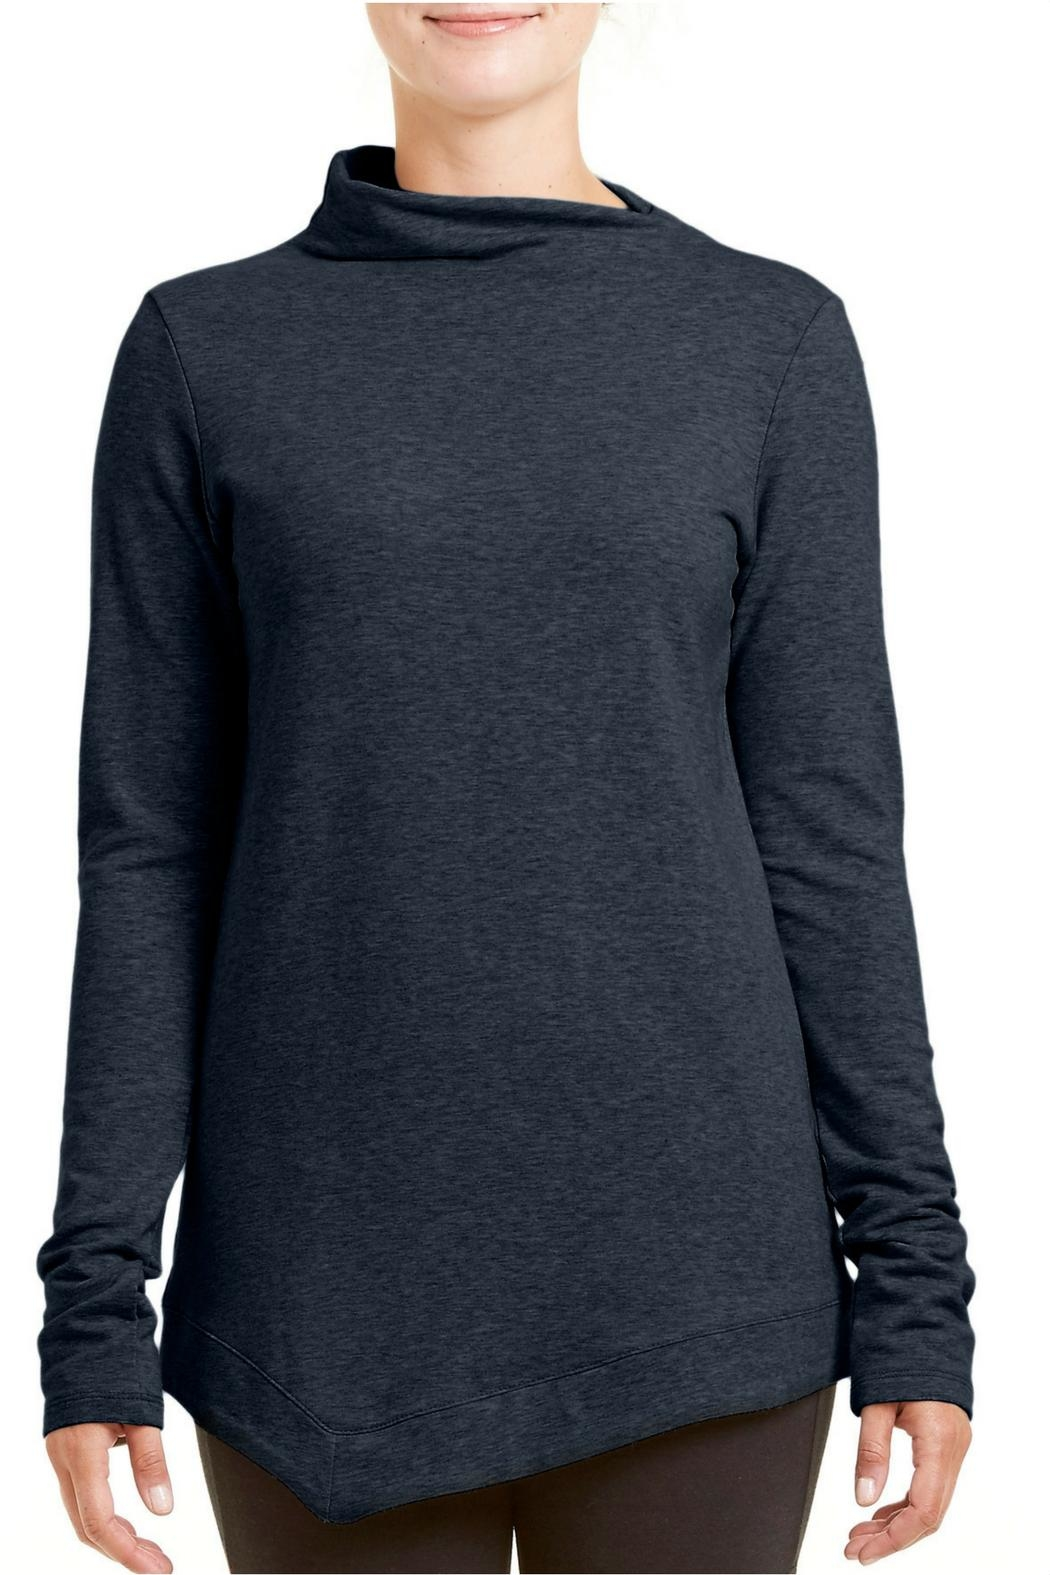 FIG Clothing Kaj Sweater - Front Cropped Image